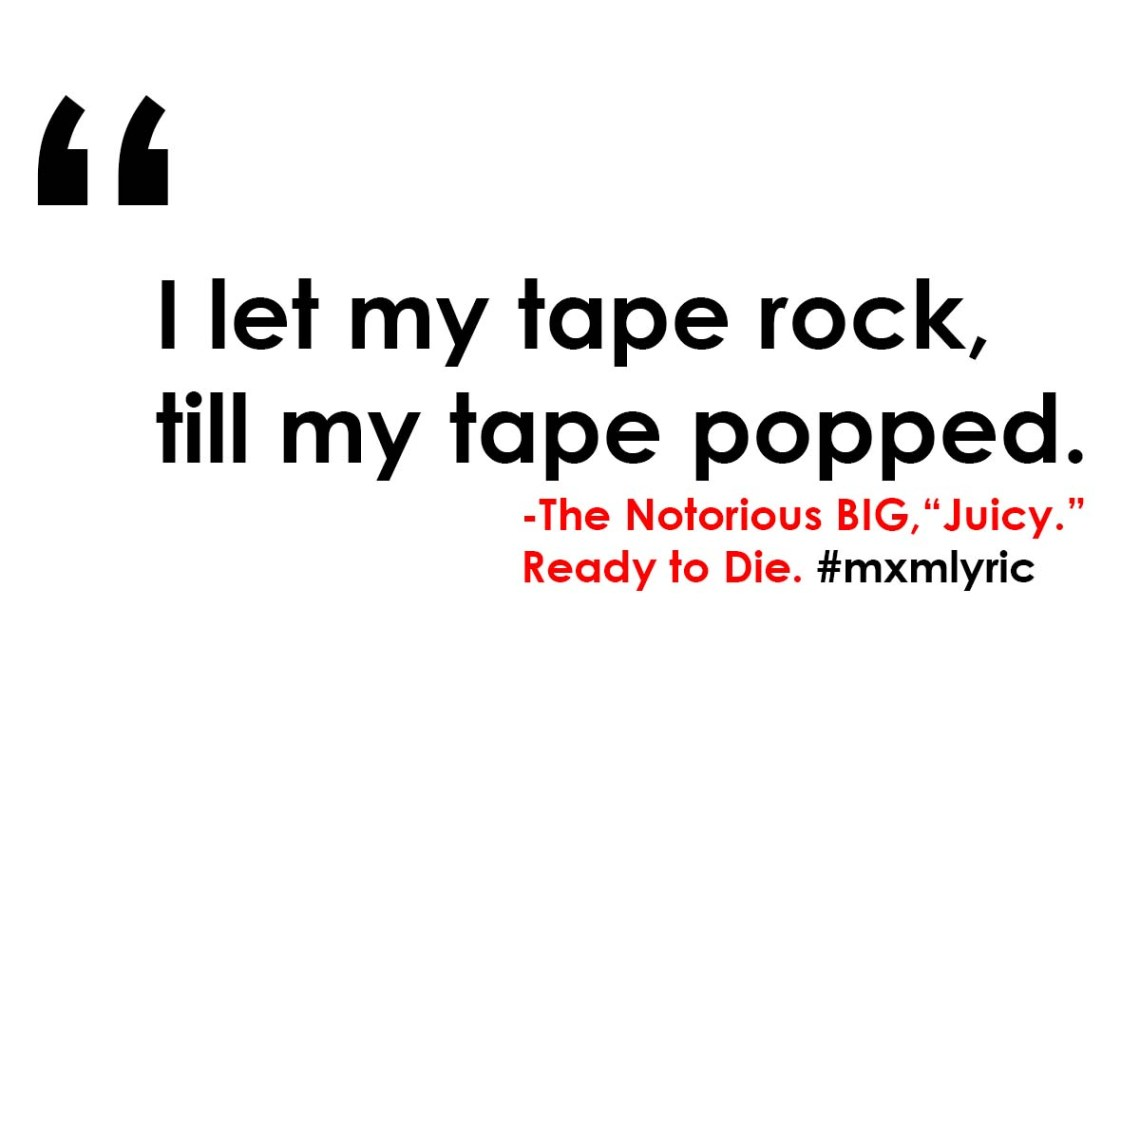 I_let_my_tape_rock_site